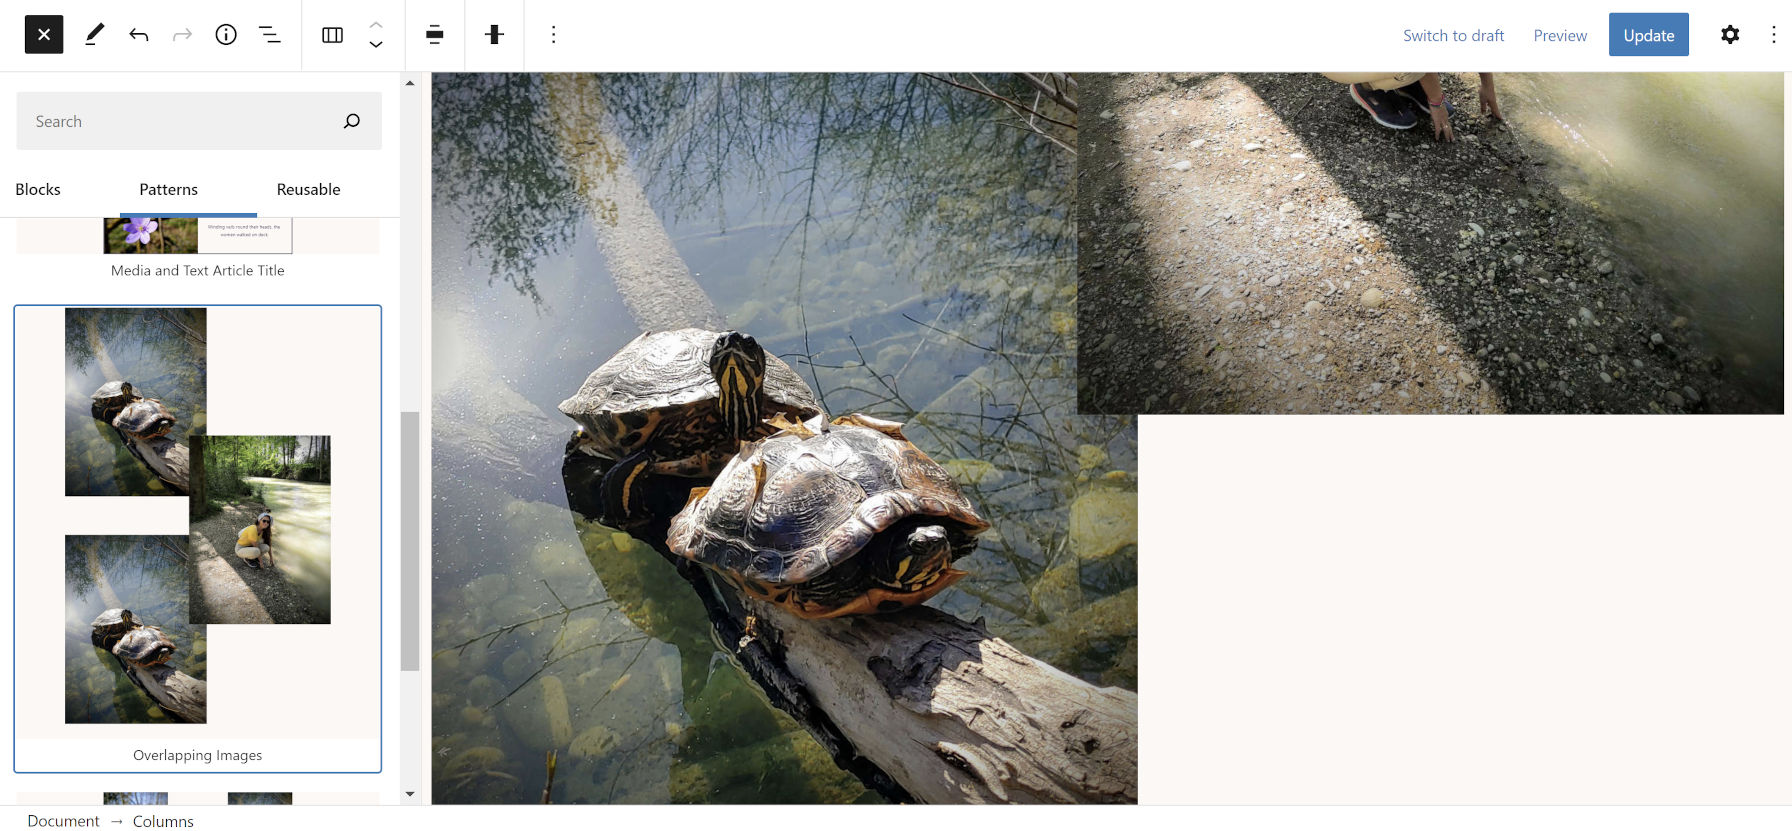 Overlapping images within columns shown in the WordPress block editor.